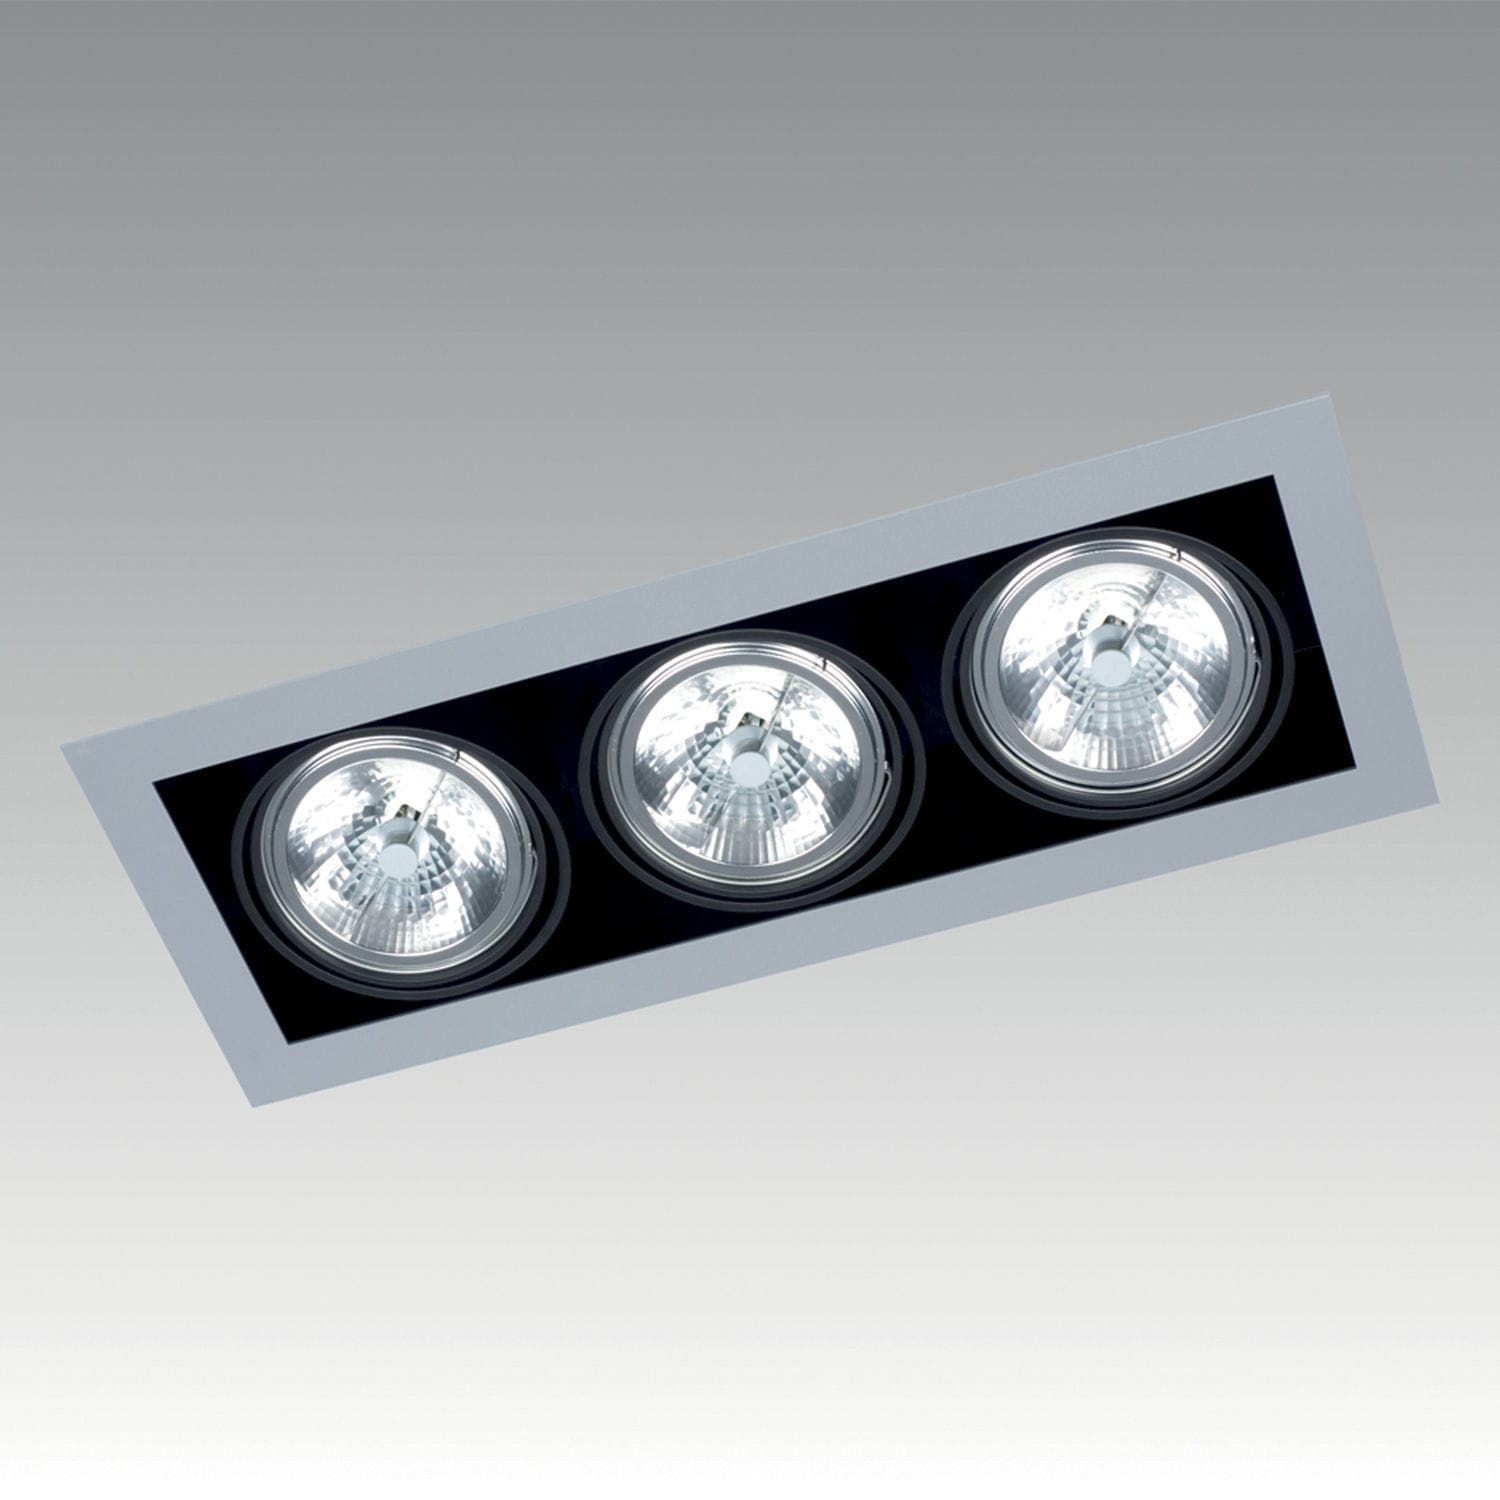 Recessed ceiling spotlight / indoor / LED / square - FRAME SINGLE ... for Ceiling Spot Light Square  557yll